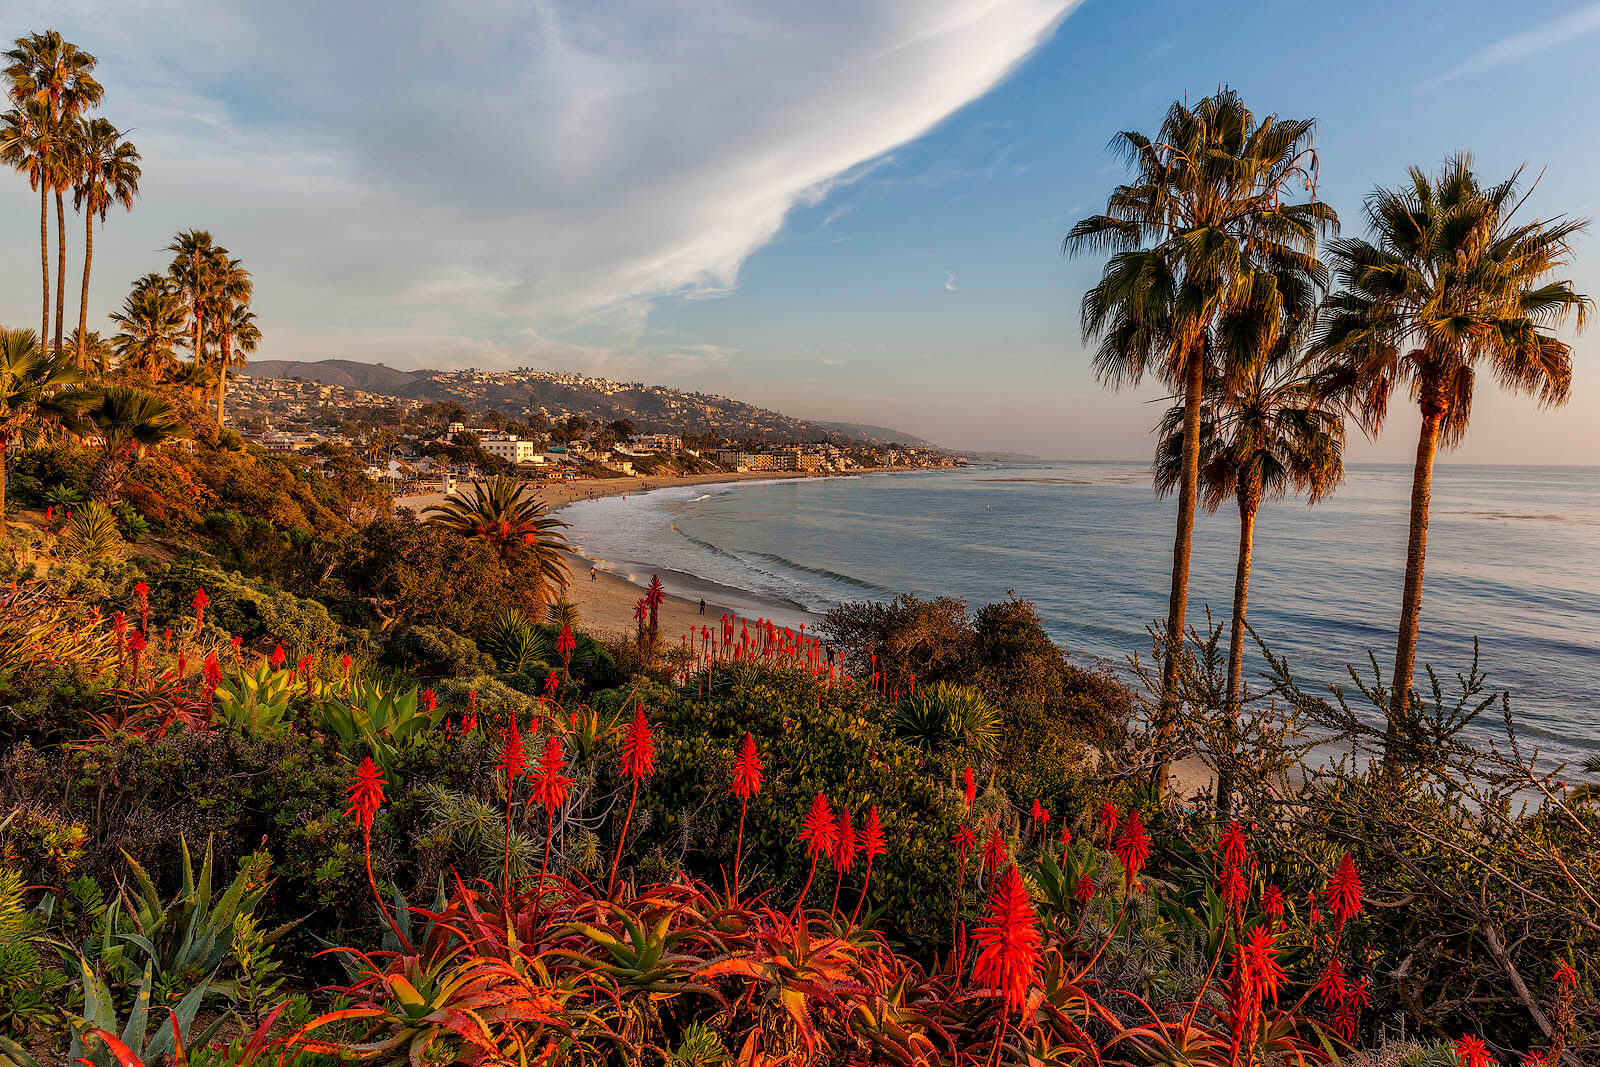 A fantastic setting at Heisler Park in Laguna Beach and I found the lovely aloe in bloom a fantastic foreground for this shot...